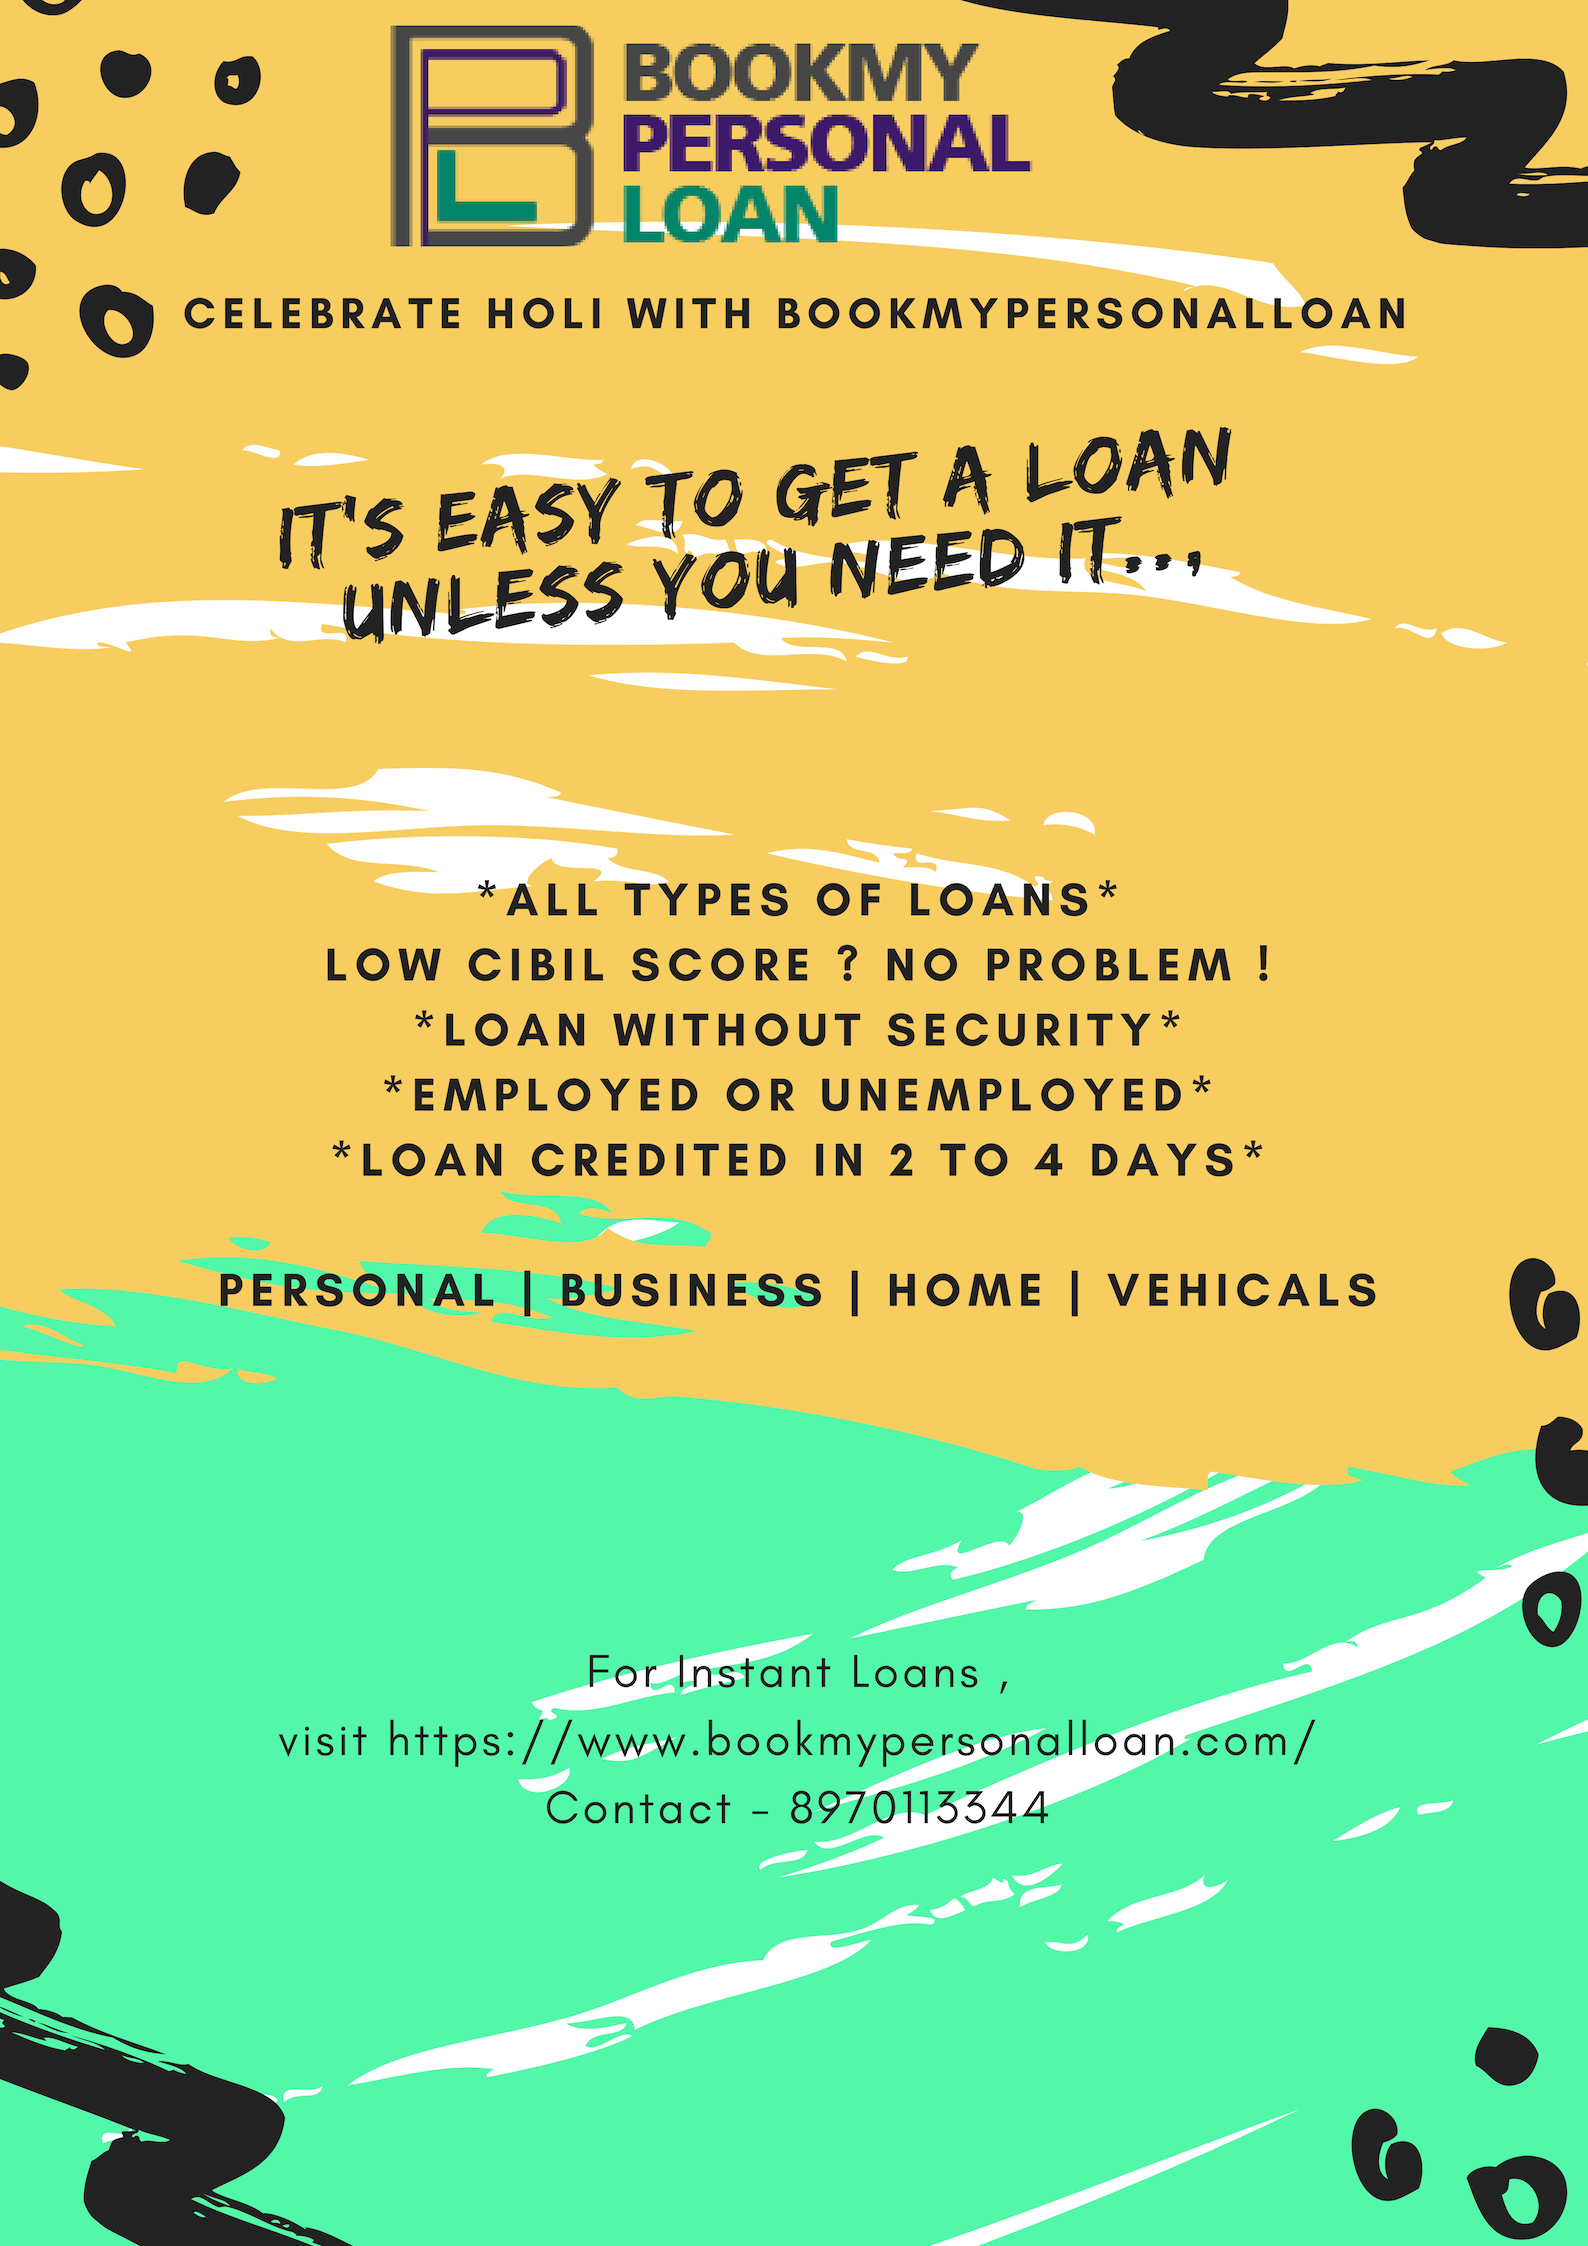 Instant Personal Loan For Low Cibil Score In Bangalore Bookmypersonalloan Personal Loans Mortage Loans Types Of Loans